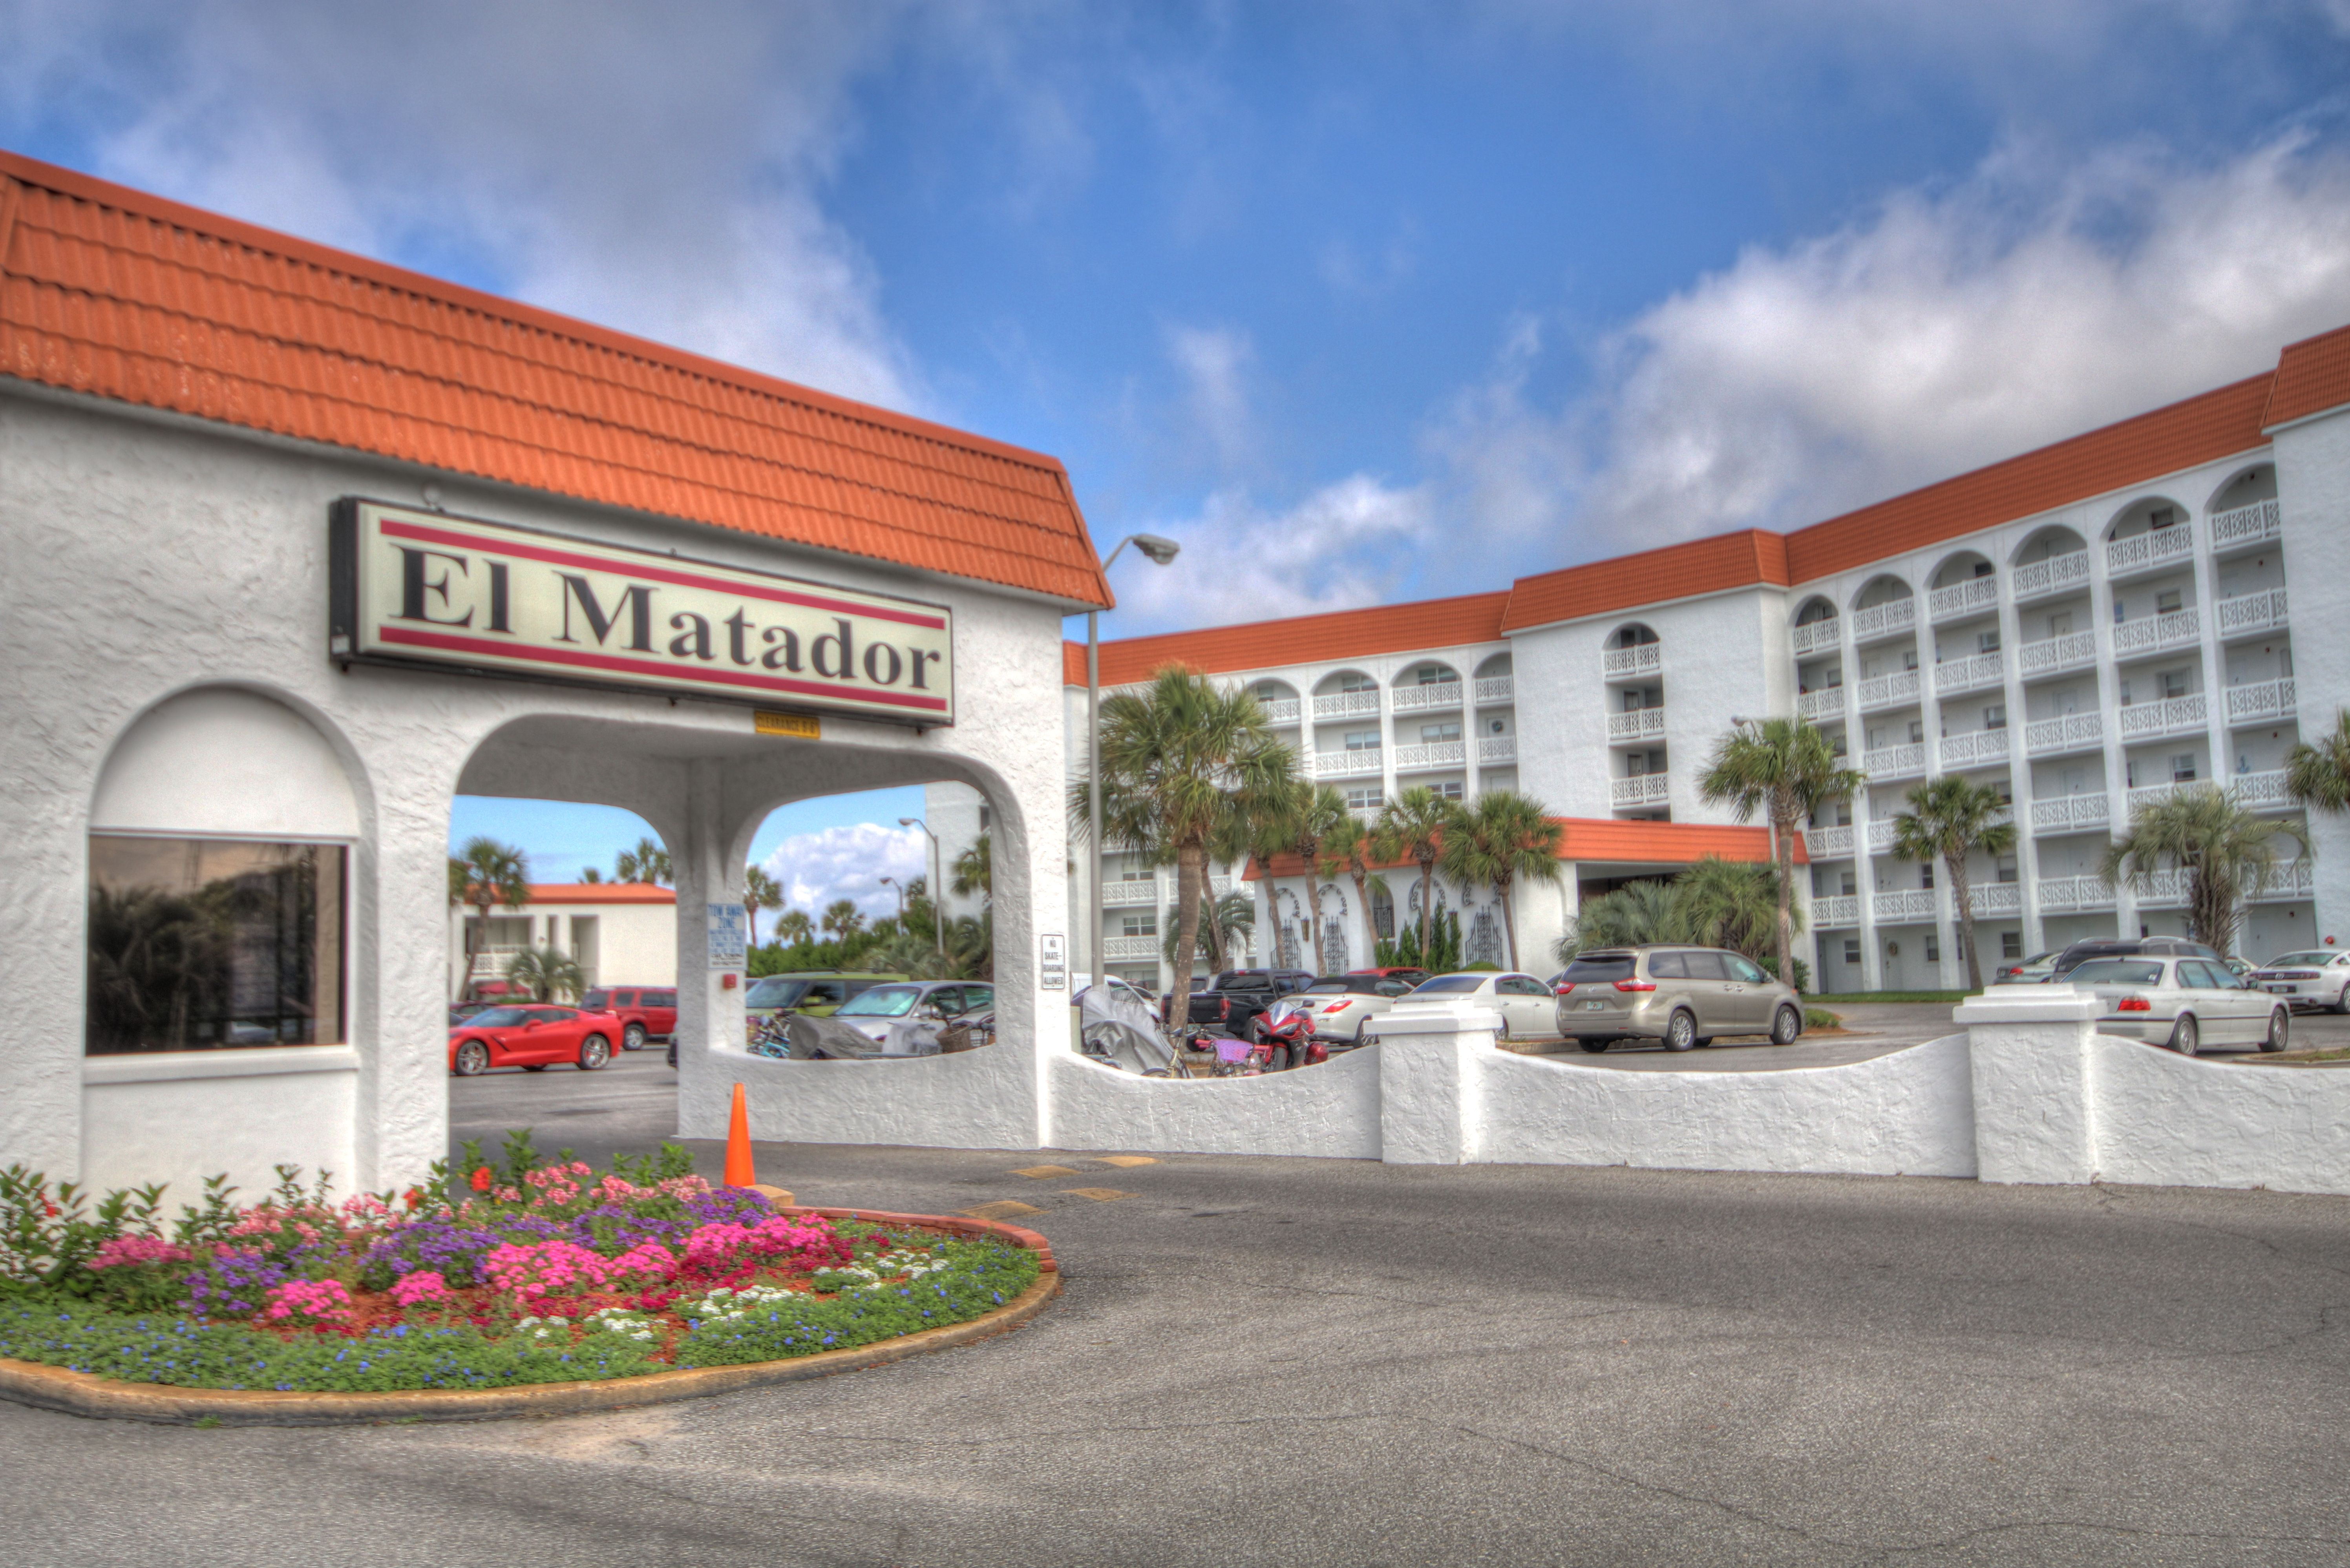 El Matador Resort – Ft. Walton Beach